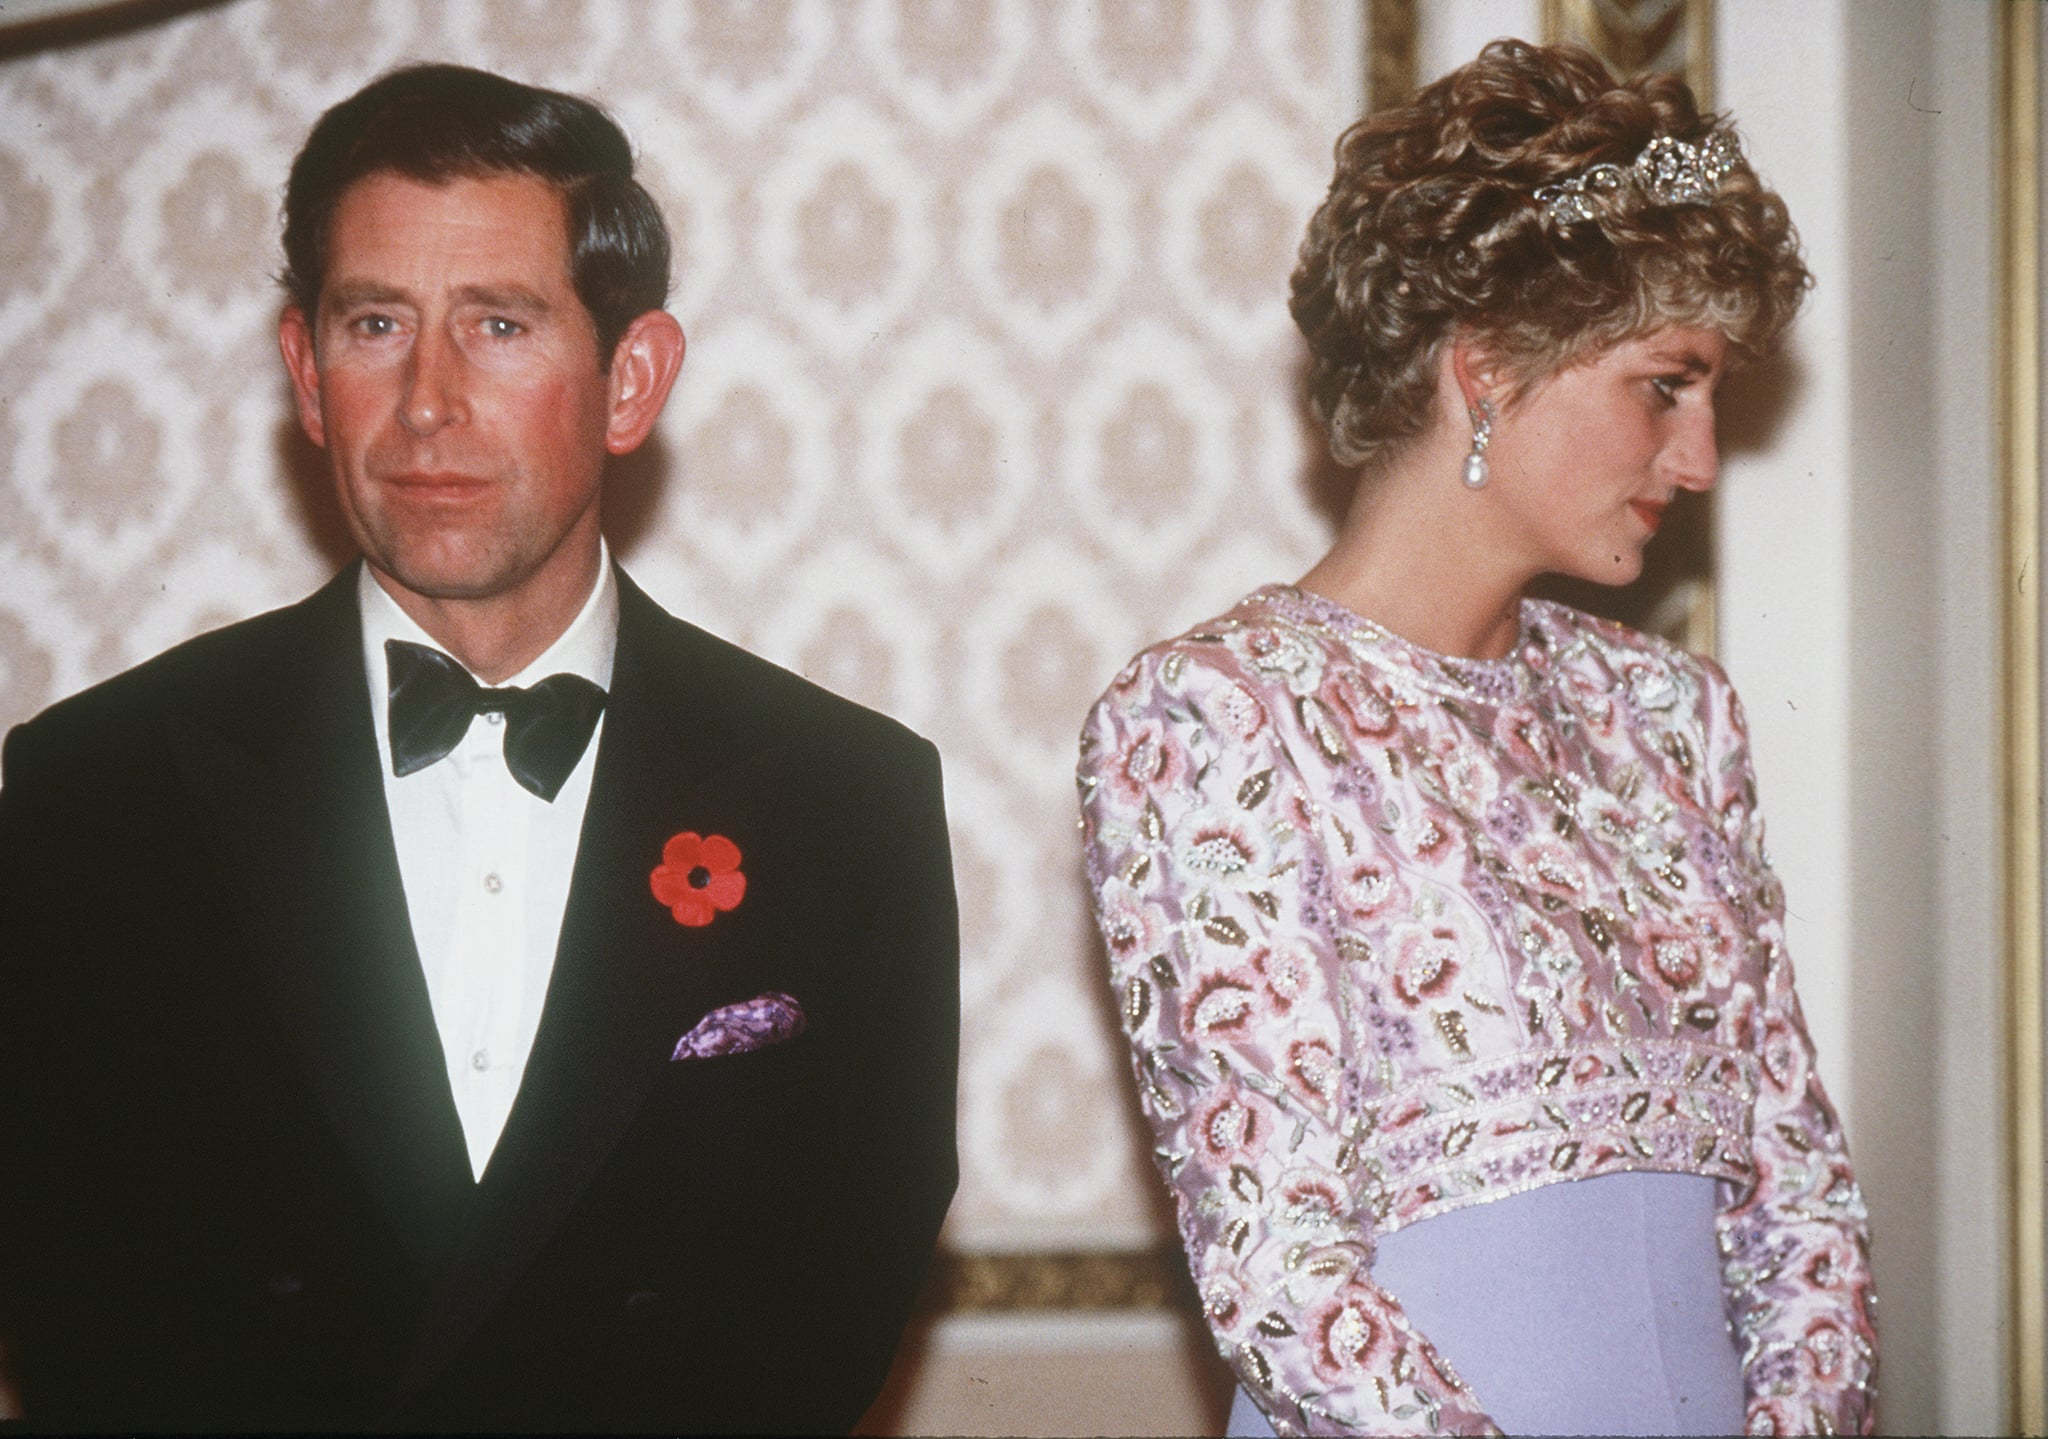 SOUTH KOREA - 1992:  Prince Charles, Prince of Wales and Princess Diana, Princess of Wales, are at loggerheads during their tour of South Korea in 1992.  Diana is wearing a mauve sheaf dress by Catherine Walker with a bolero of embroidered pastel flowers.  (Photo by Anwar Hussein/WireImage)